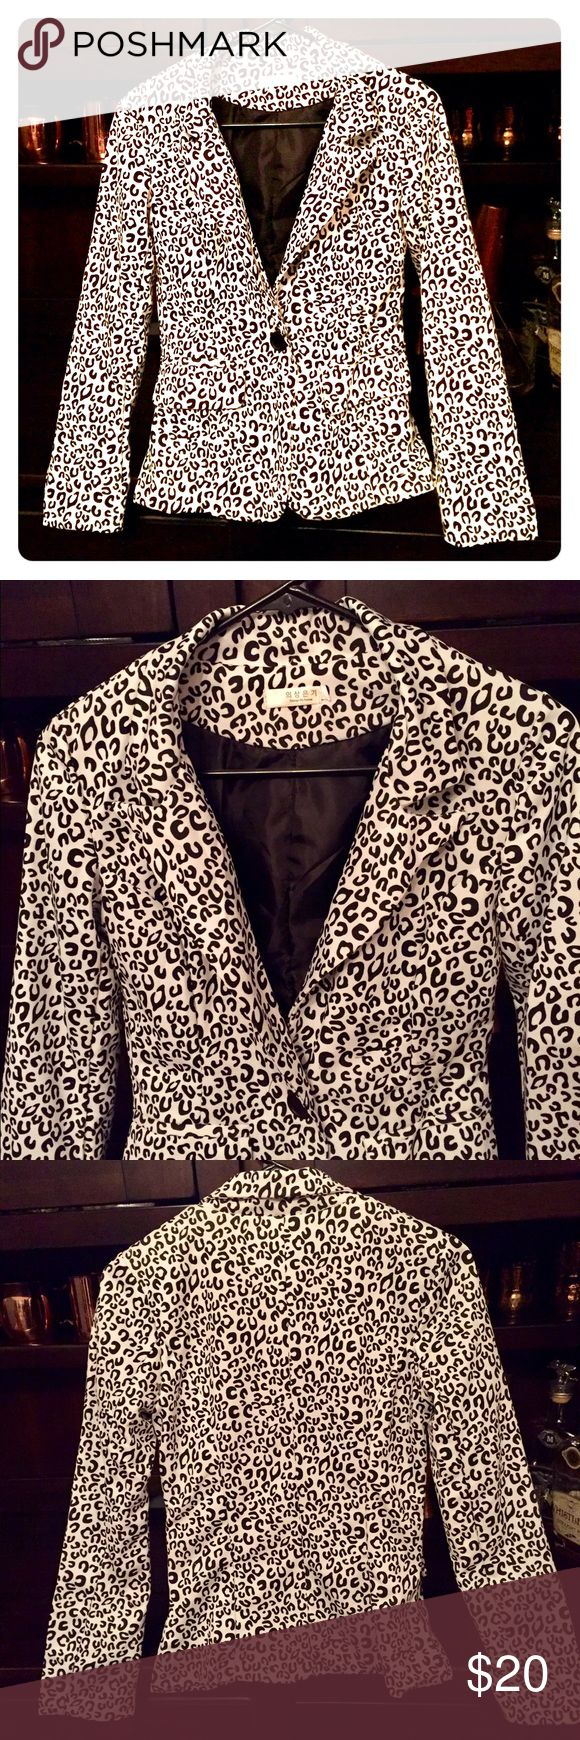 Black and White Leopard Blazer - S Super cute black and white leopard blazer - great for dressing up or down. Jackets & Coats Blazers